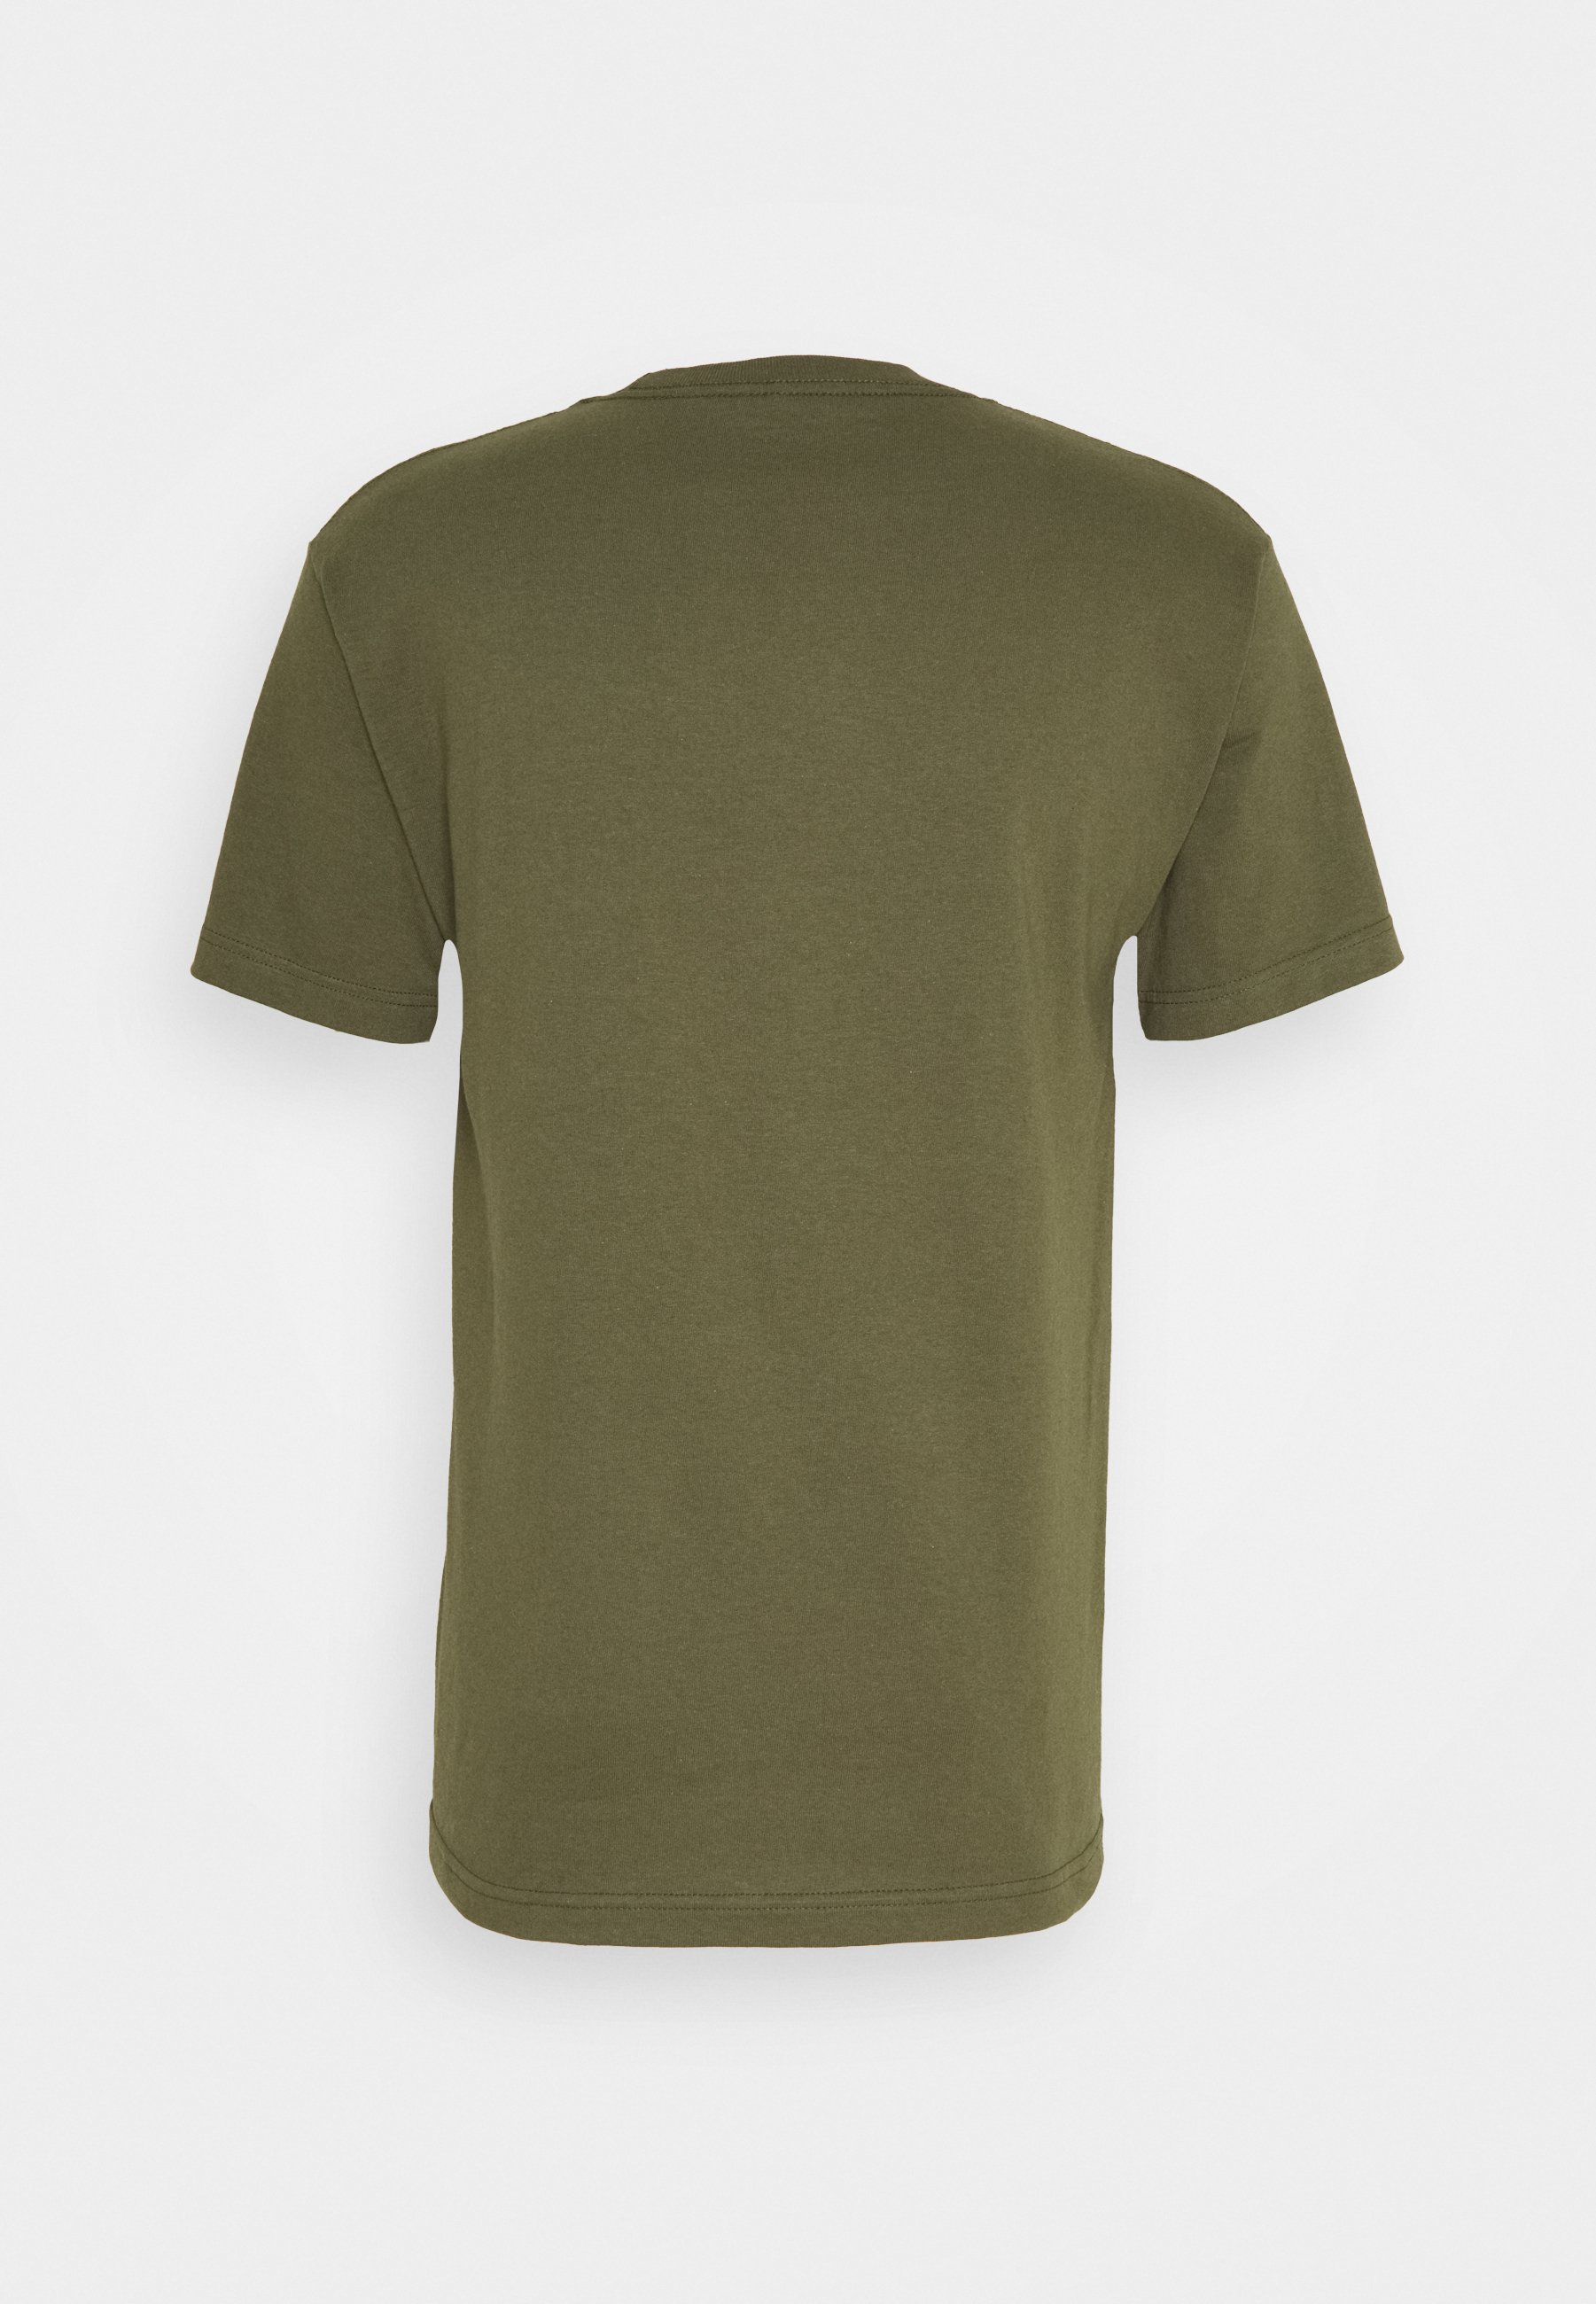 Primitive Warrior Tee - T-shirts Med Print Military Green